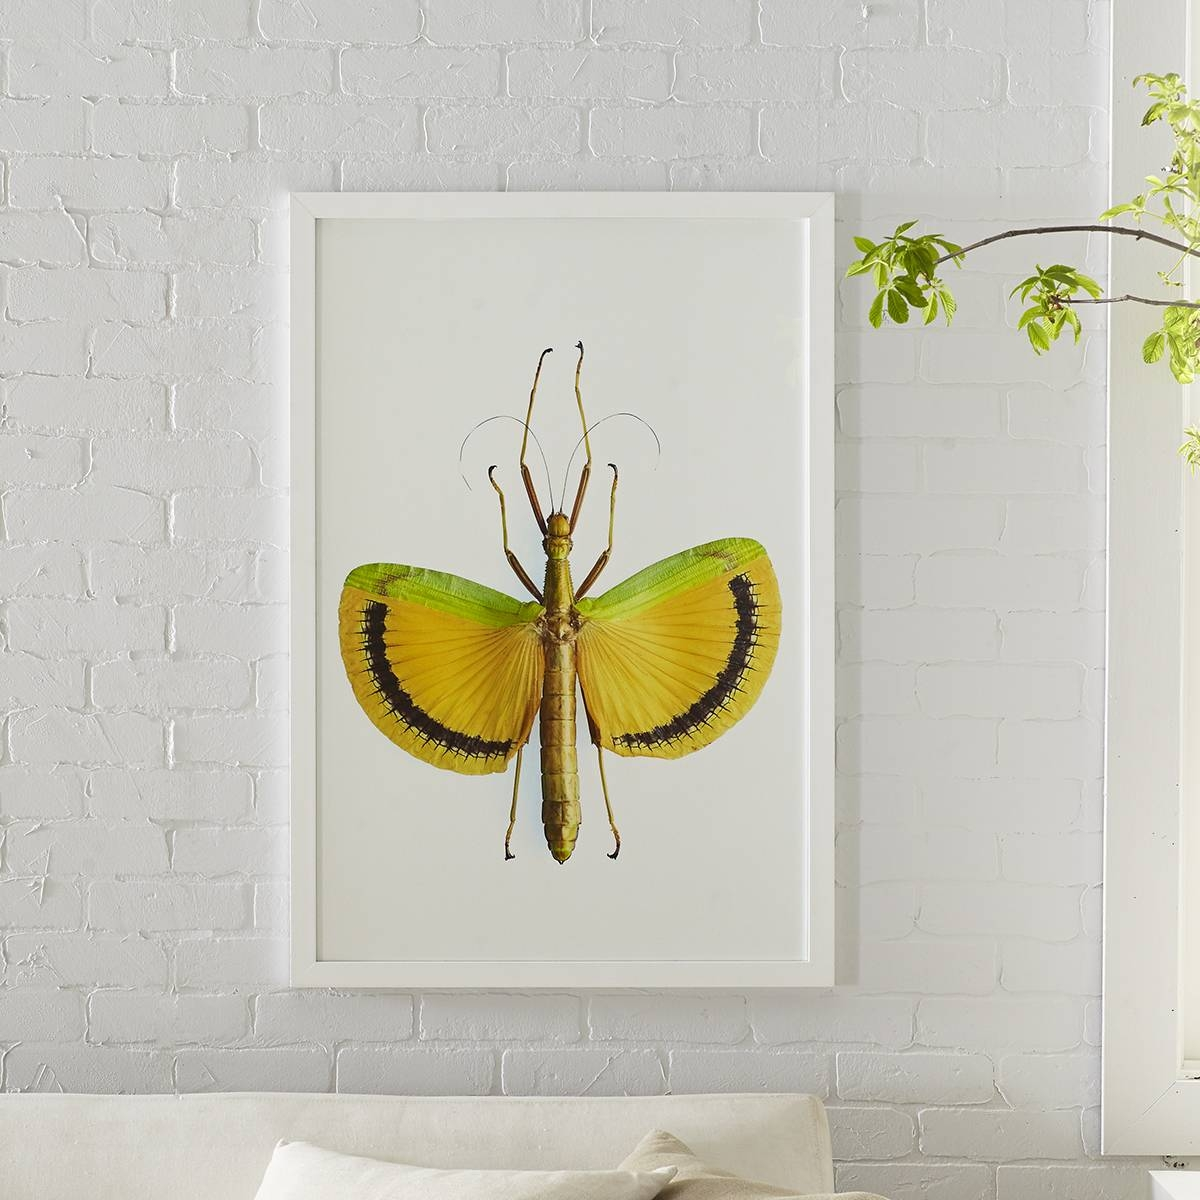 Stick Insect Wall Art – Yellow Umbrella | Wisteria Intended For Latest Insect Wall Art (View 9 of 30)